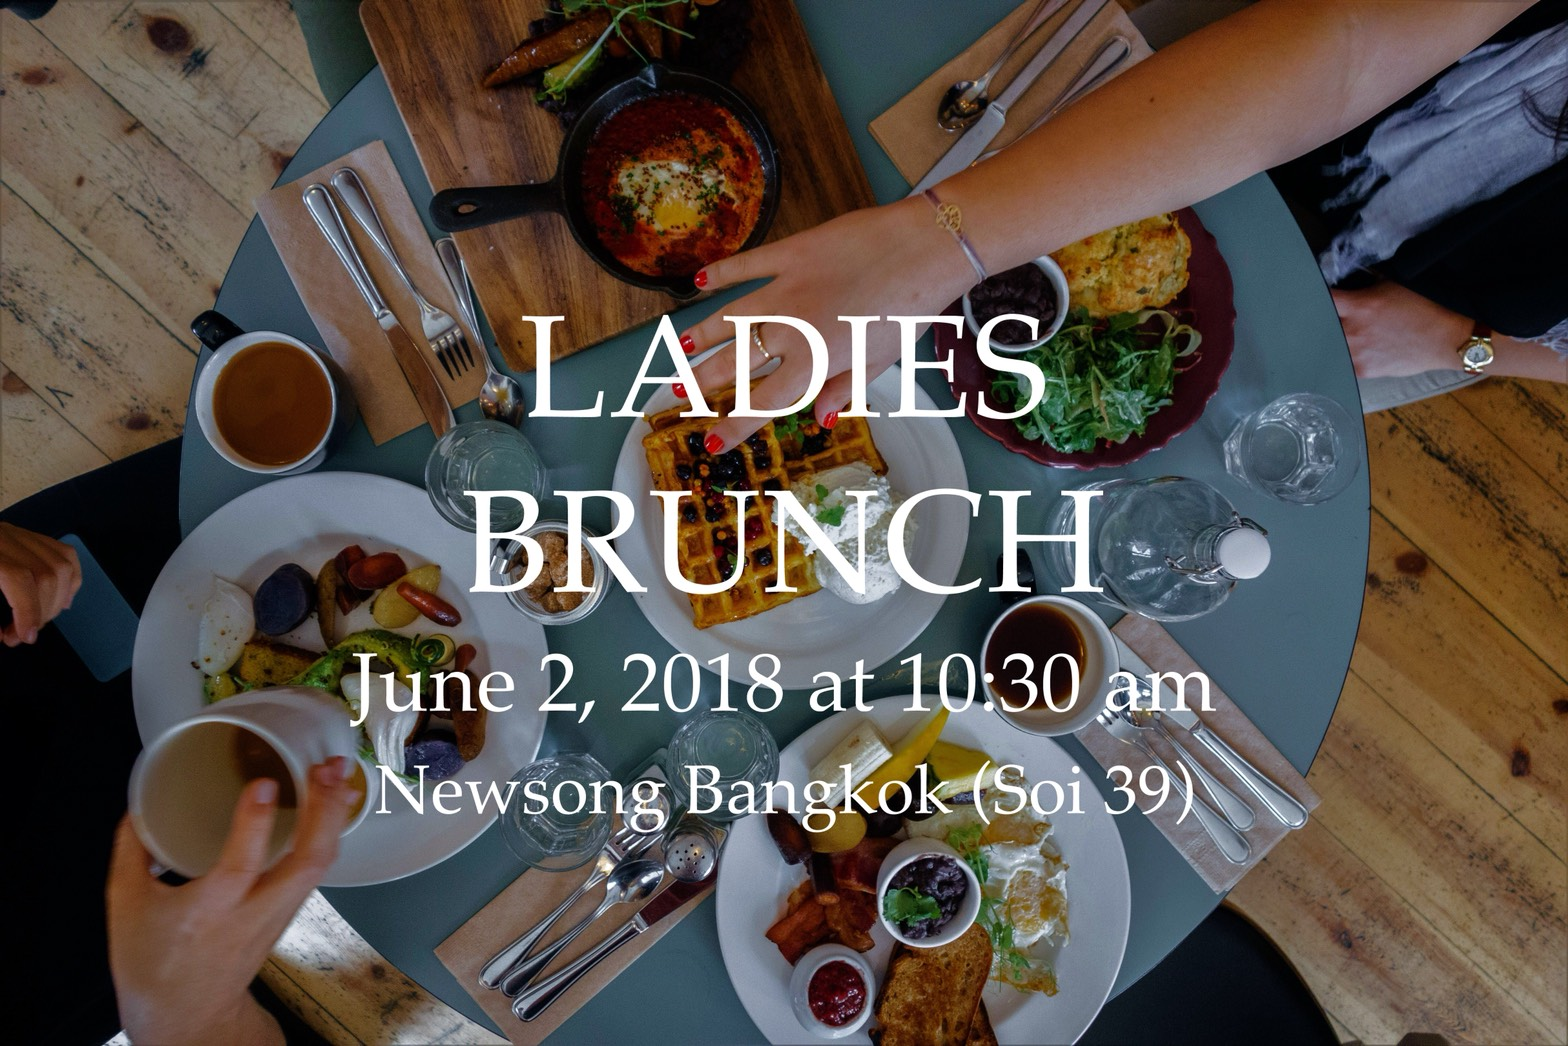 newsongbangkok brunch lady